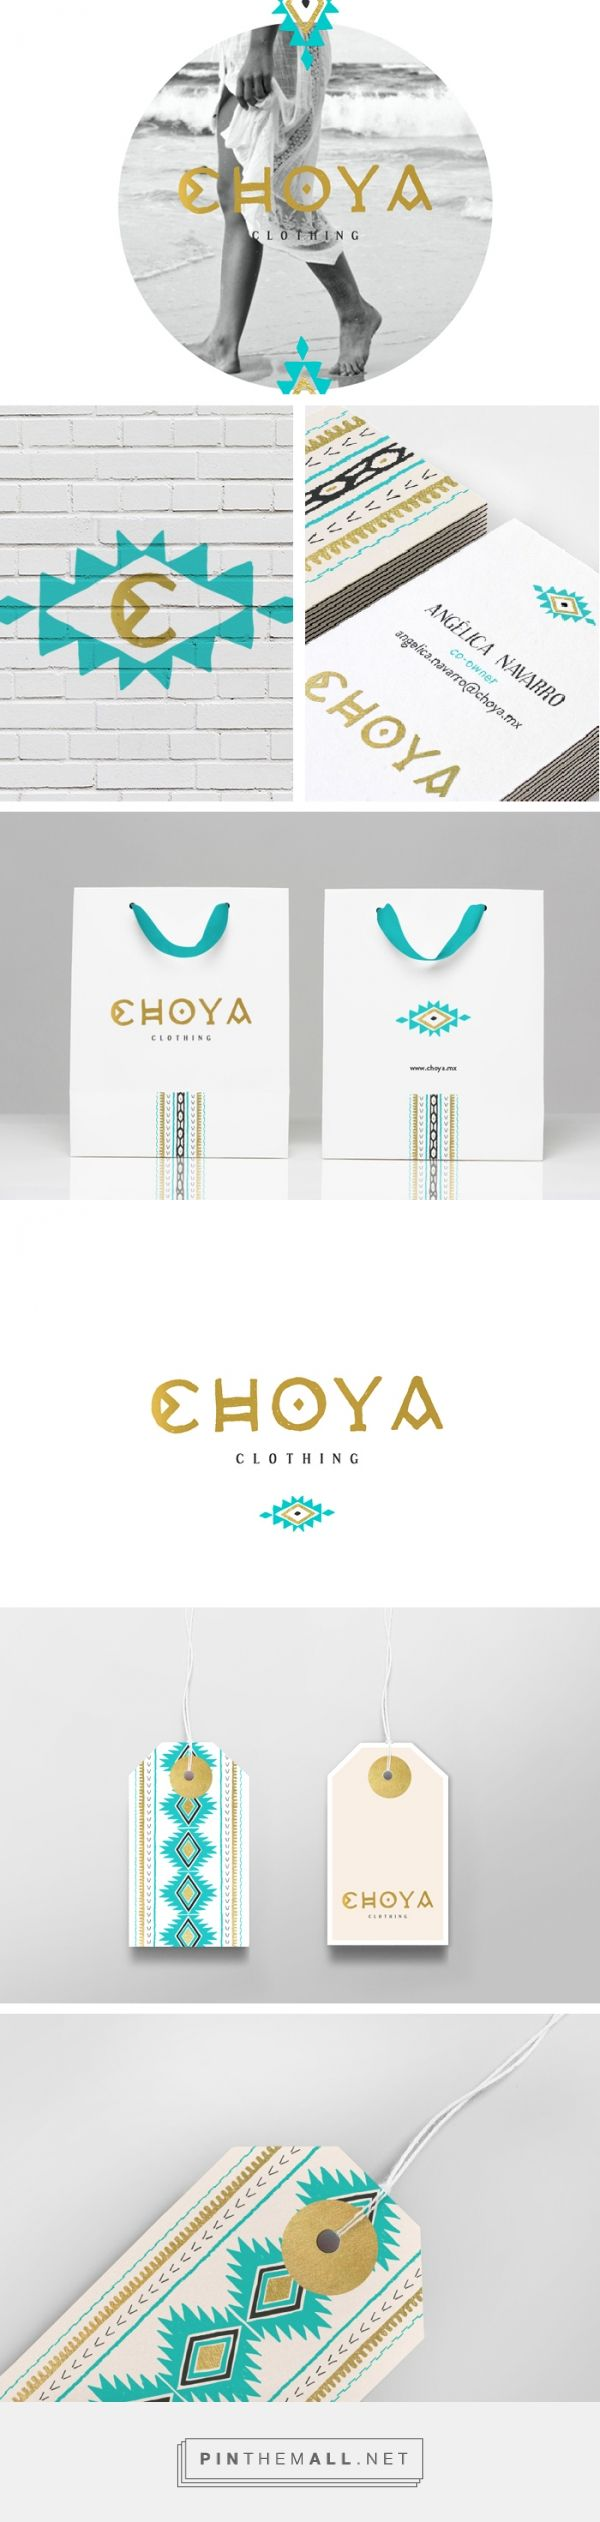 Choya Clothing Branding on Behance | Fivestar Branding – Design and Branding Agency & Inspiration Gallery